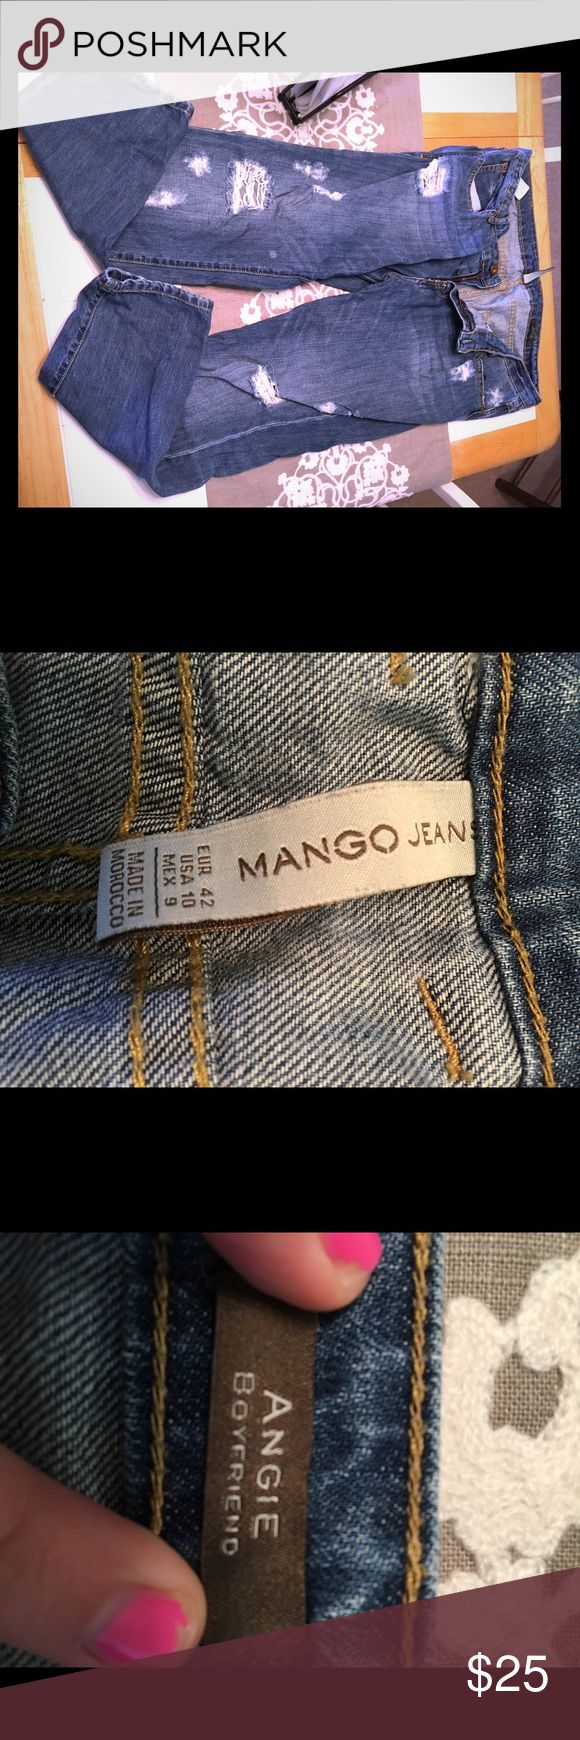 FROM SPAIN: Blue Mango BF Jeans Blue ripped/ distressed boyfriend jeans from a trip to Spain. Bought there and only worn once or twice since! Super one of a kind and stylish!!! :) Size 10 USA. Mango Jeans Boyfriend